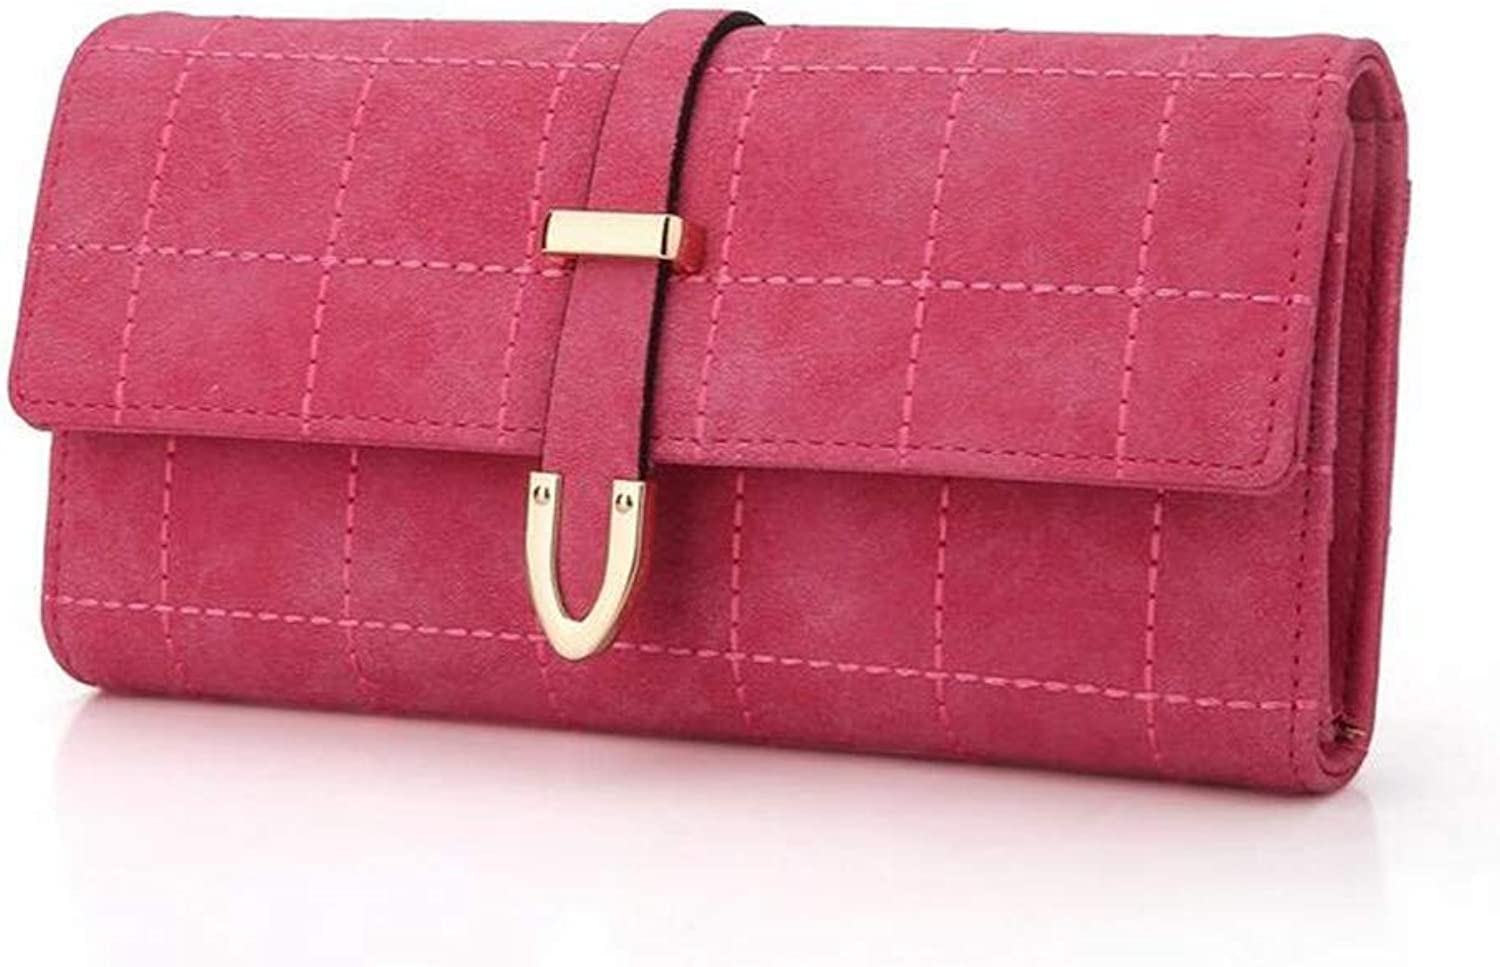 Clutch Bag Women Wallets Drawstring Nubuck Fashion Soft Leather Simple Plaid Long Purse Three Fold Clutch (19  9.5  4cm) Dinner Purse (color   Red)